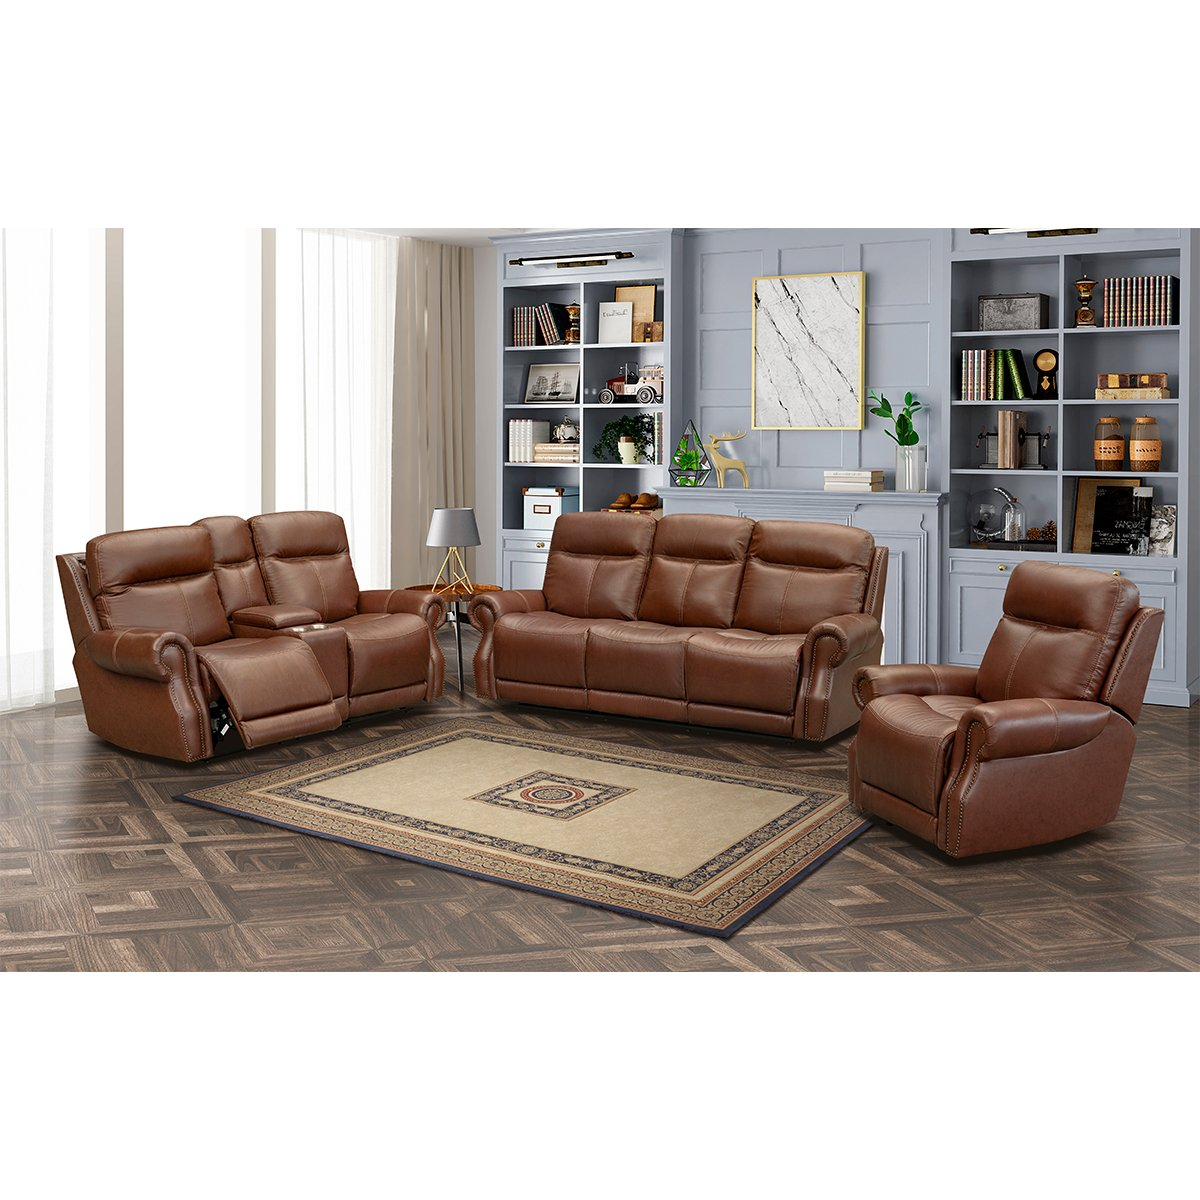 Butler Power Living Room Set